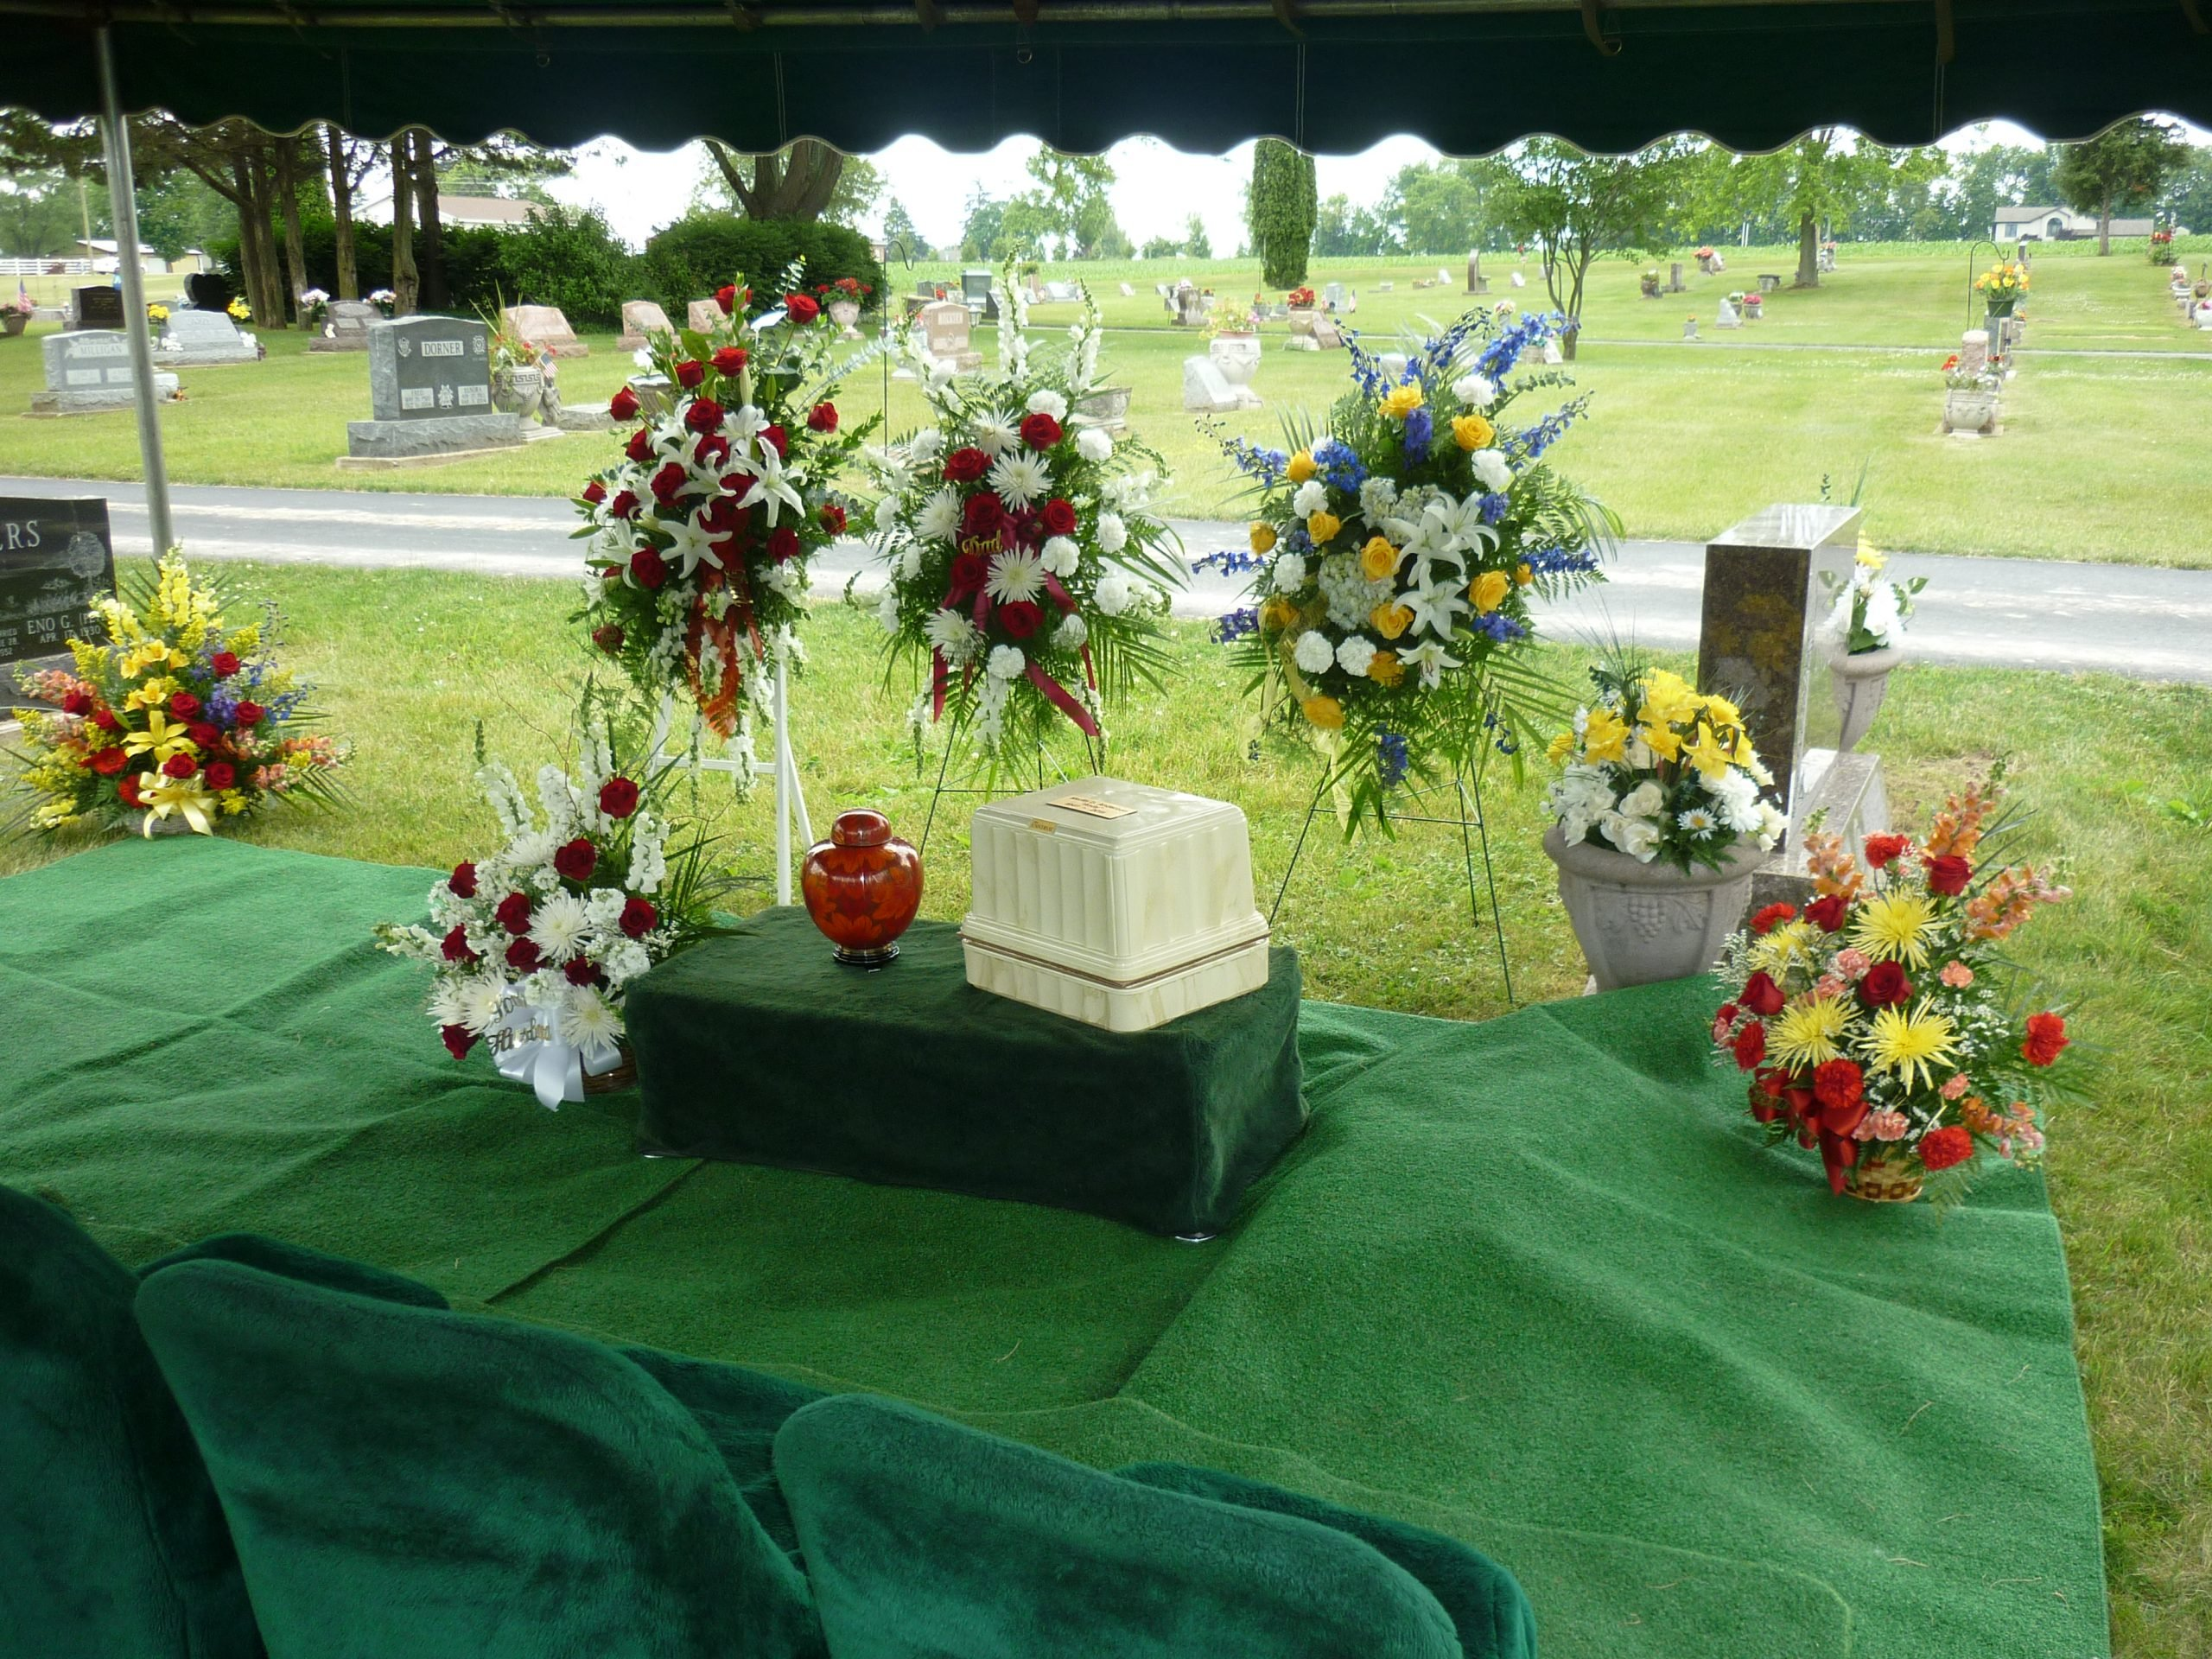 A graveside service is appropriate for the burial of cremated remains.